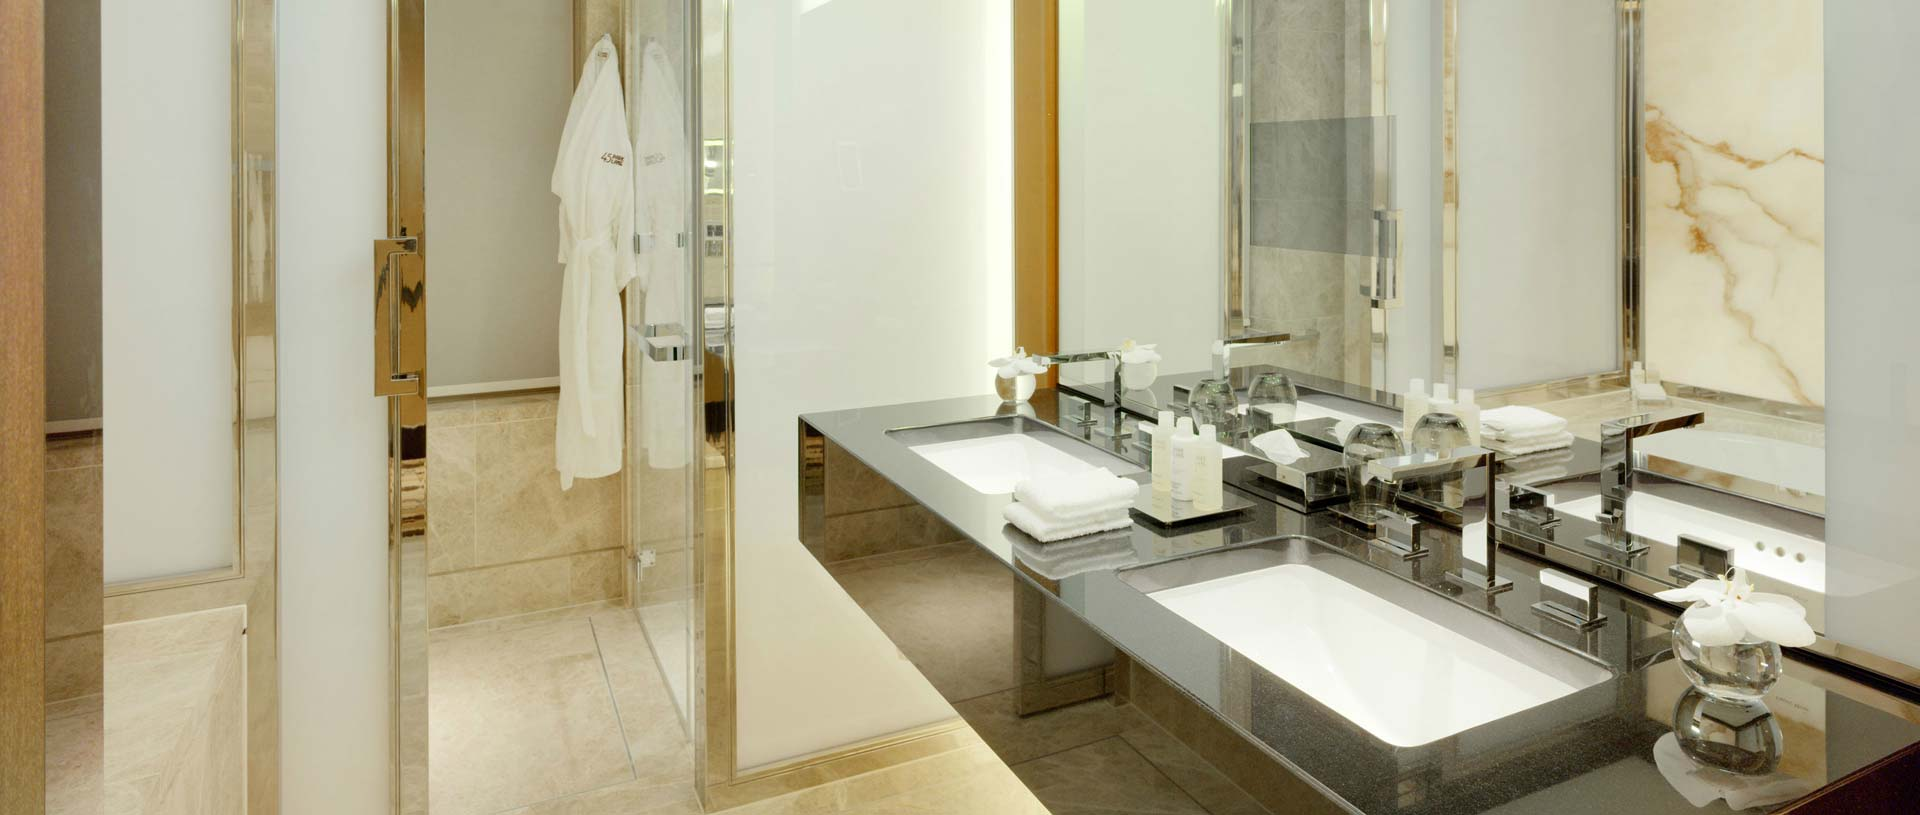 Saper Glass Homepage Slideshow - Hotels and Leisure